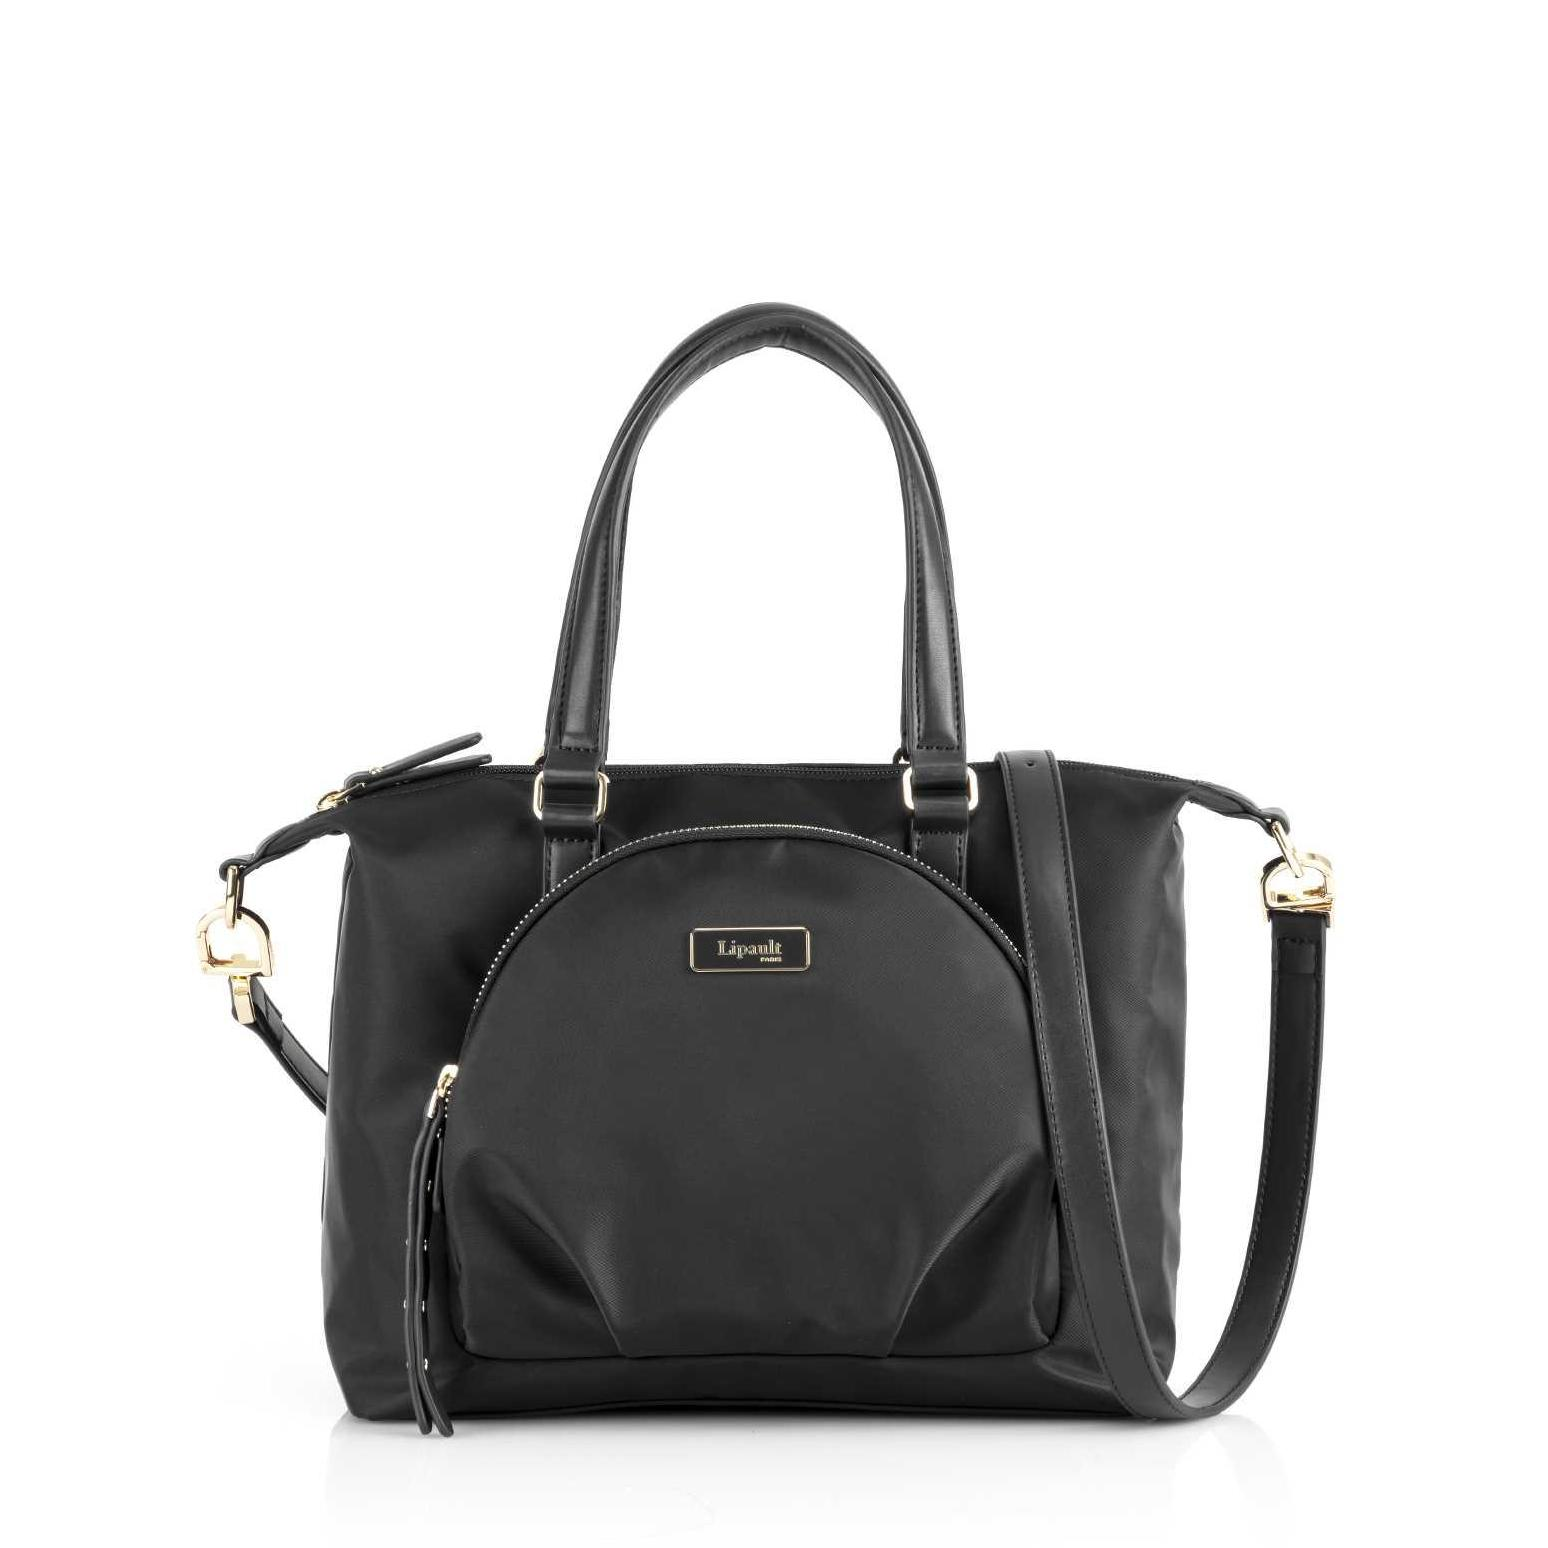 Lipault Paris Plume Essentials Round Pkt Tote Bag S